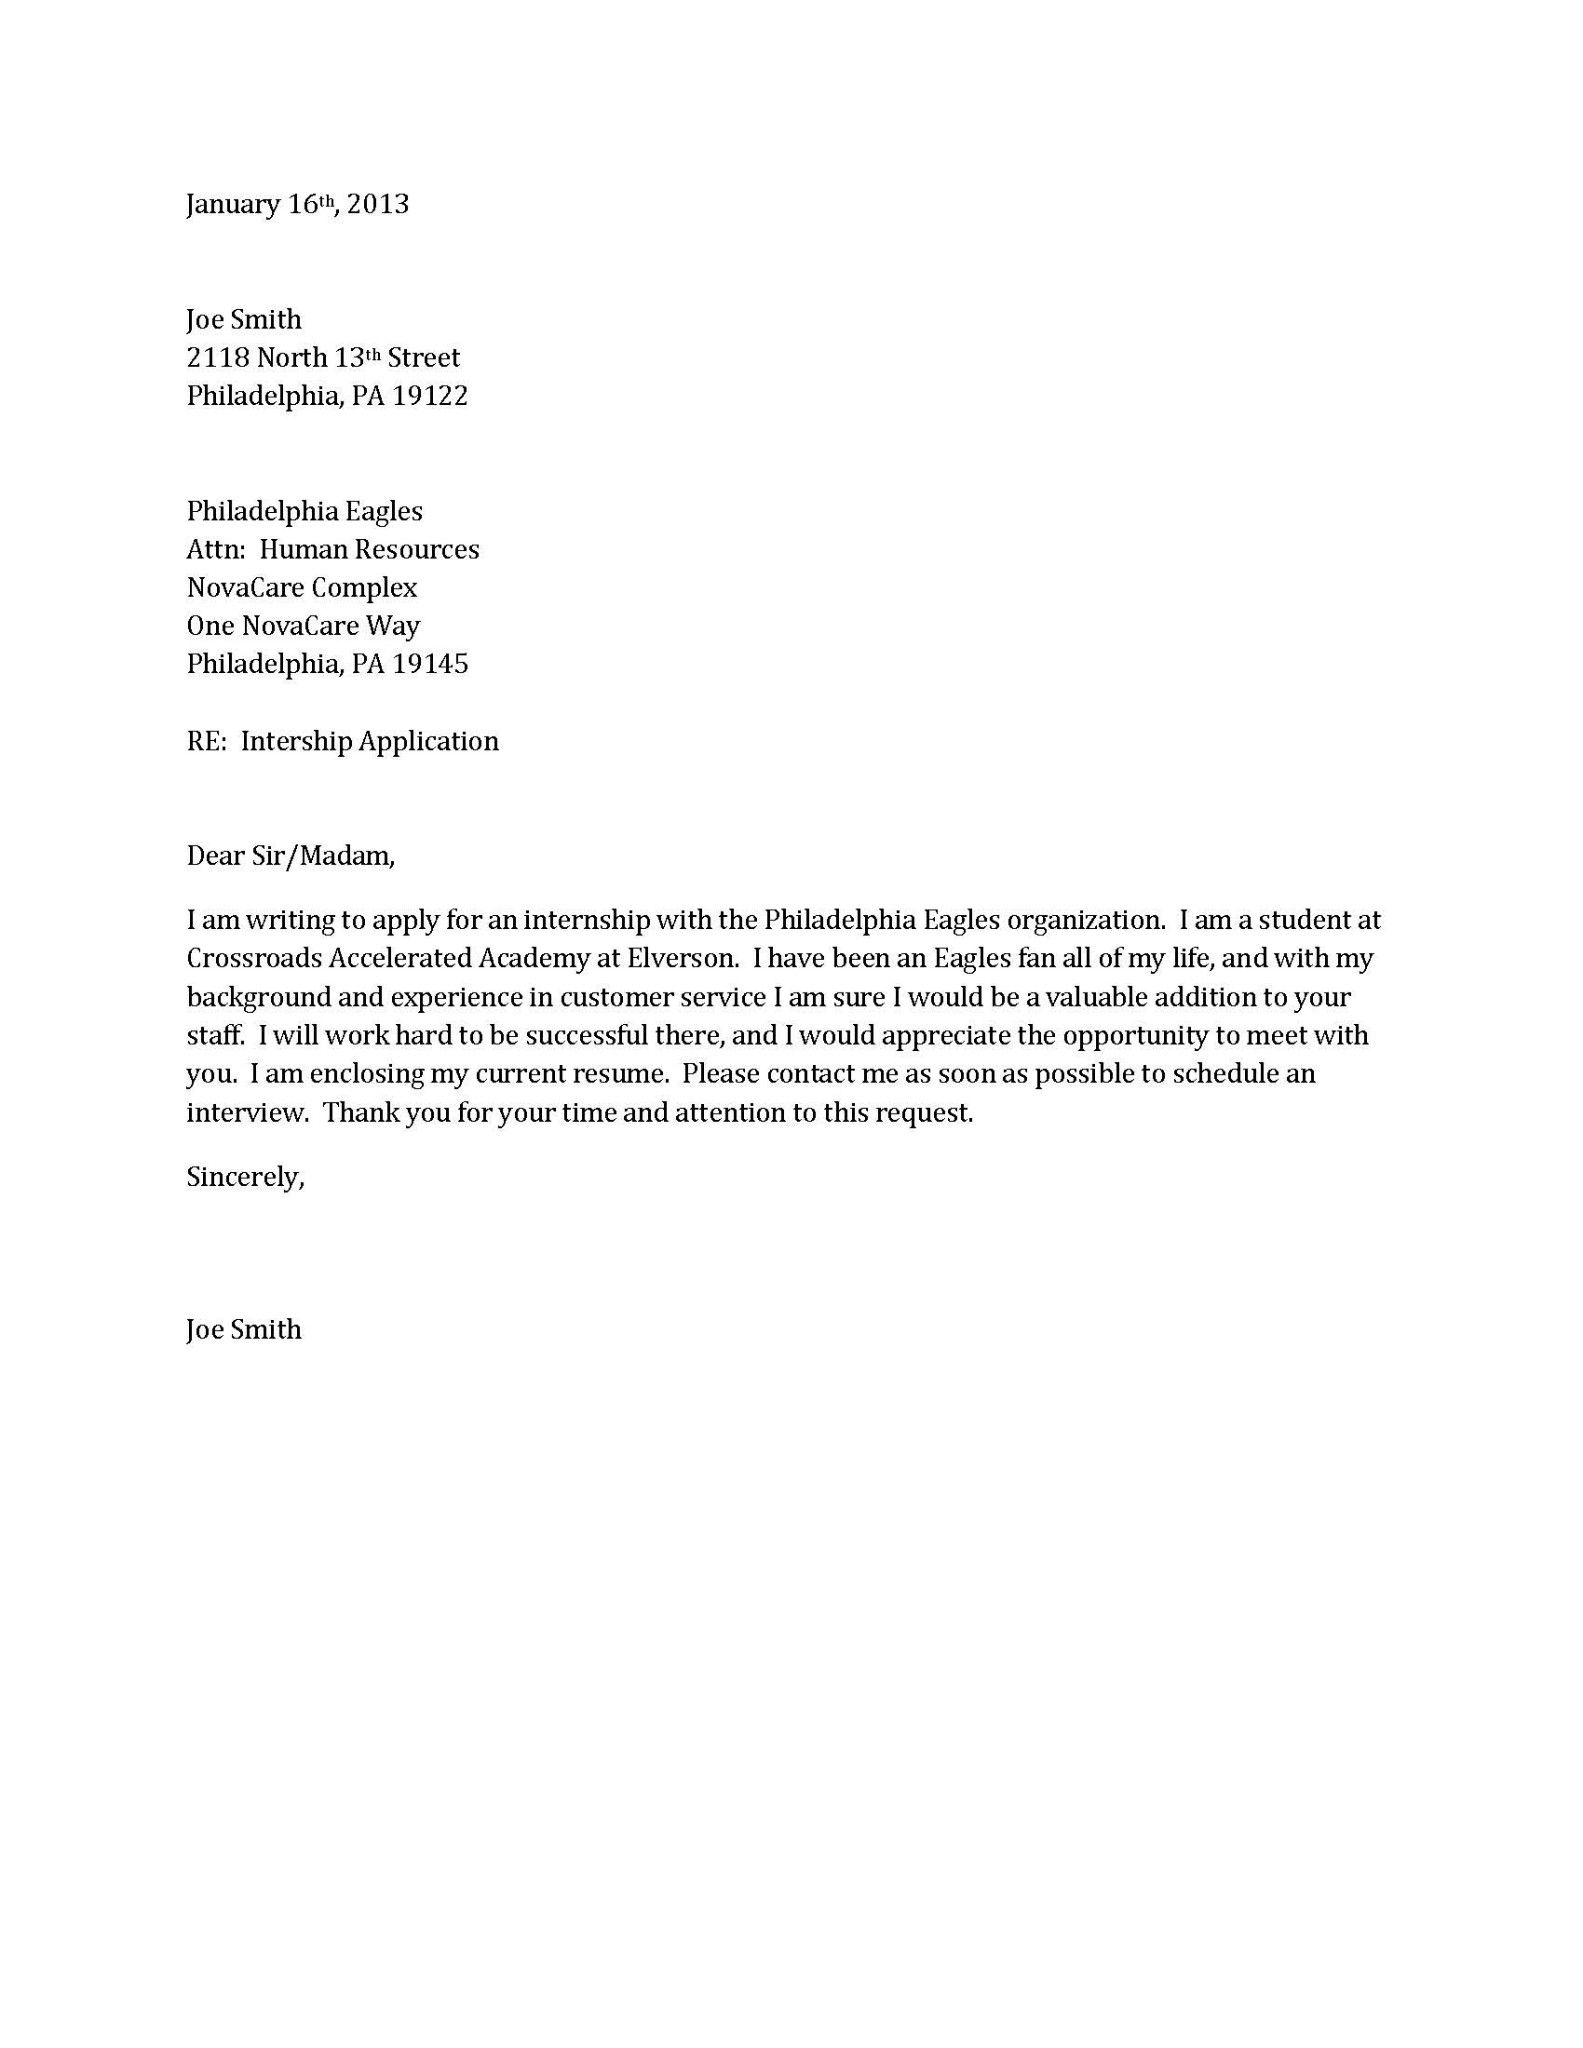 How Make Cover Letter For Resume Best Template Collection Pictures  Help Me Write A Cover Letter